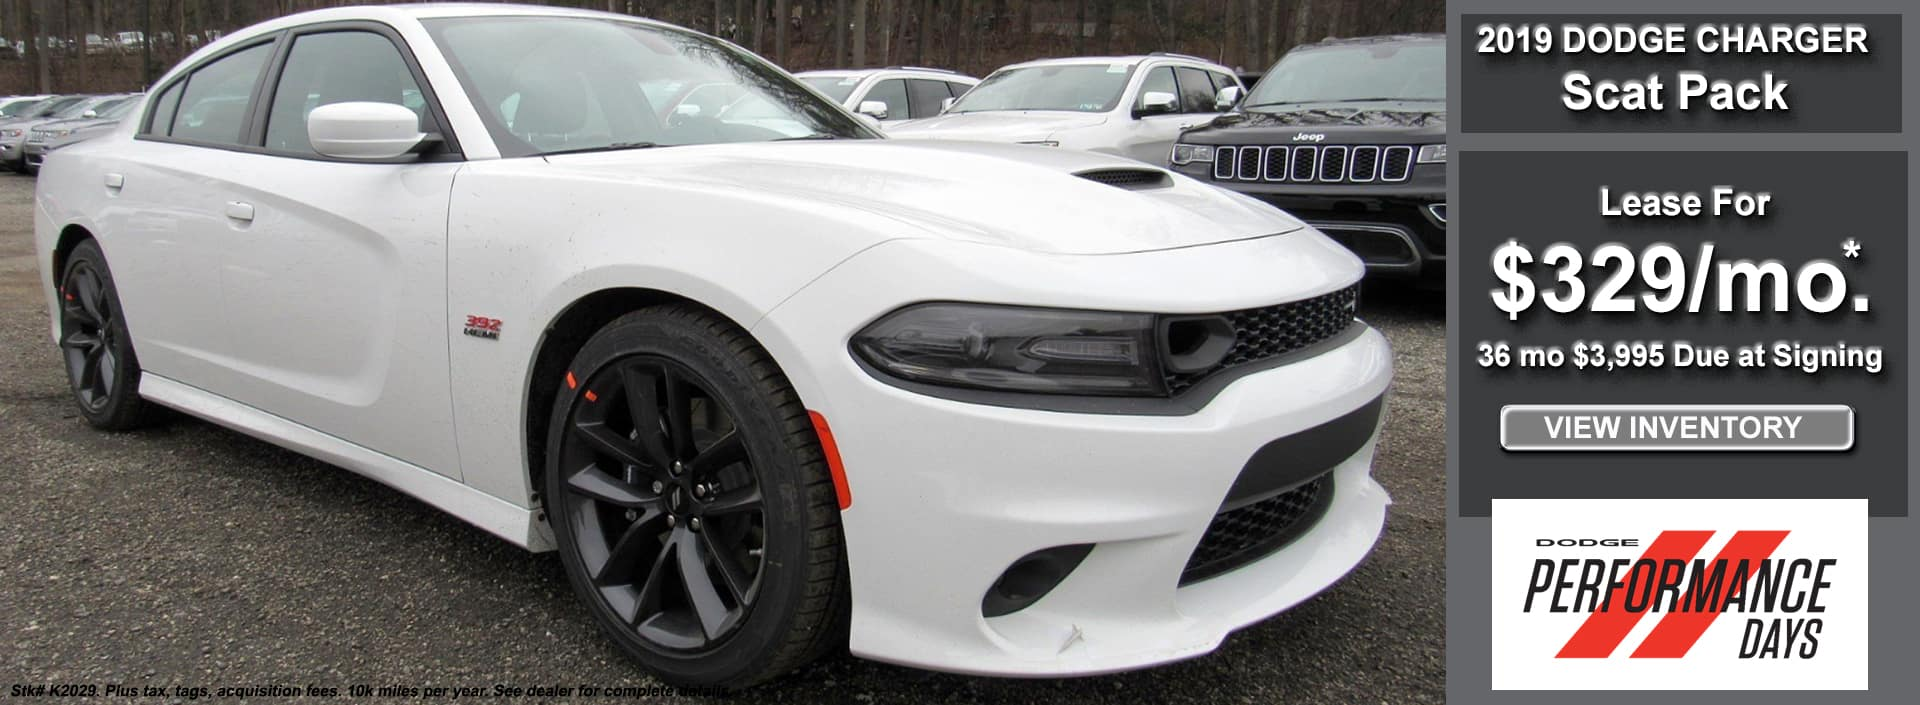 Charger Scat Pack Lease April 2019